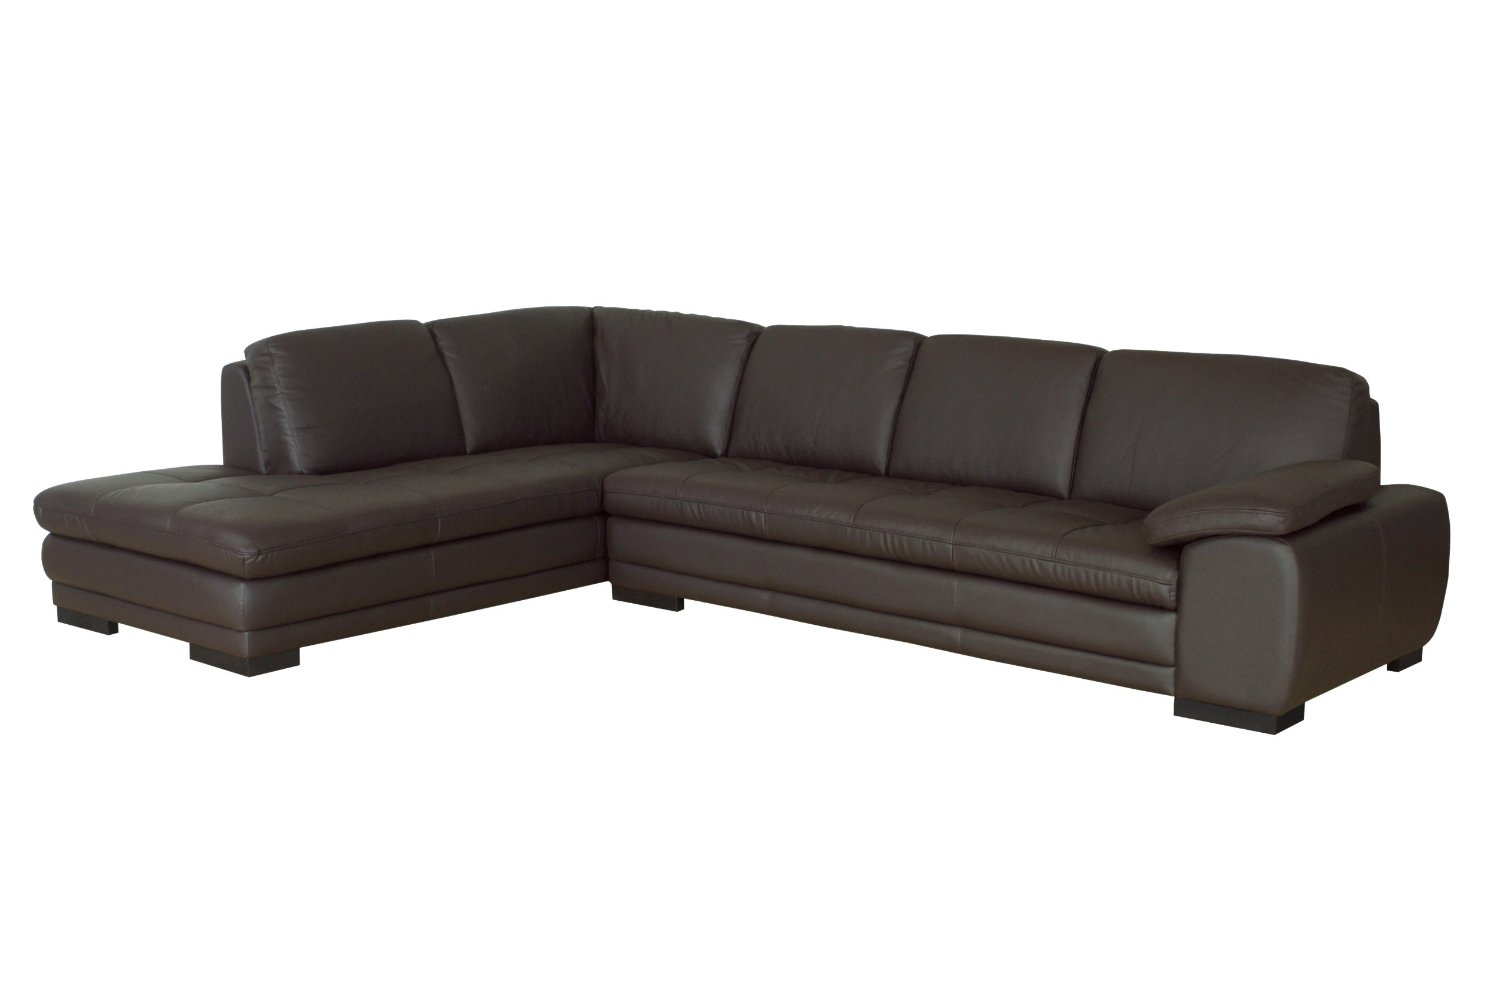 Leather Sectional Furniture Guide  Leather-Sofa.org